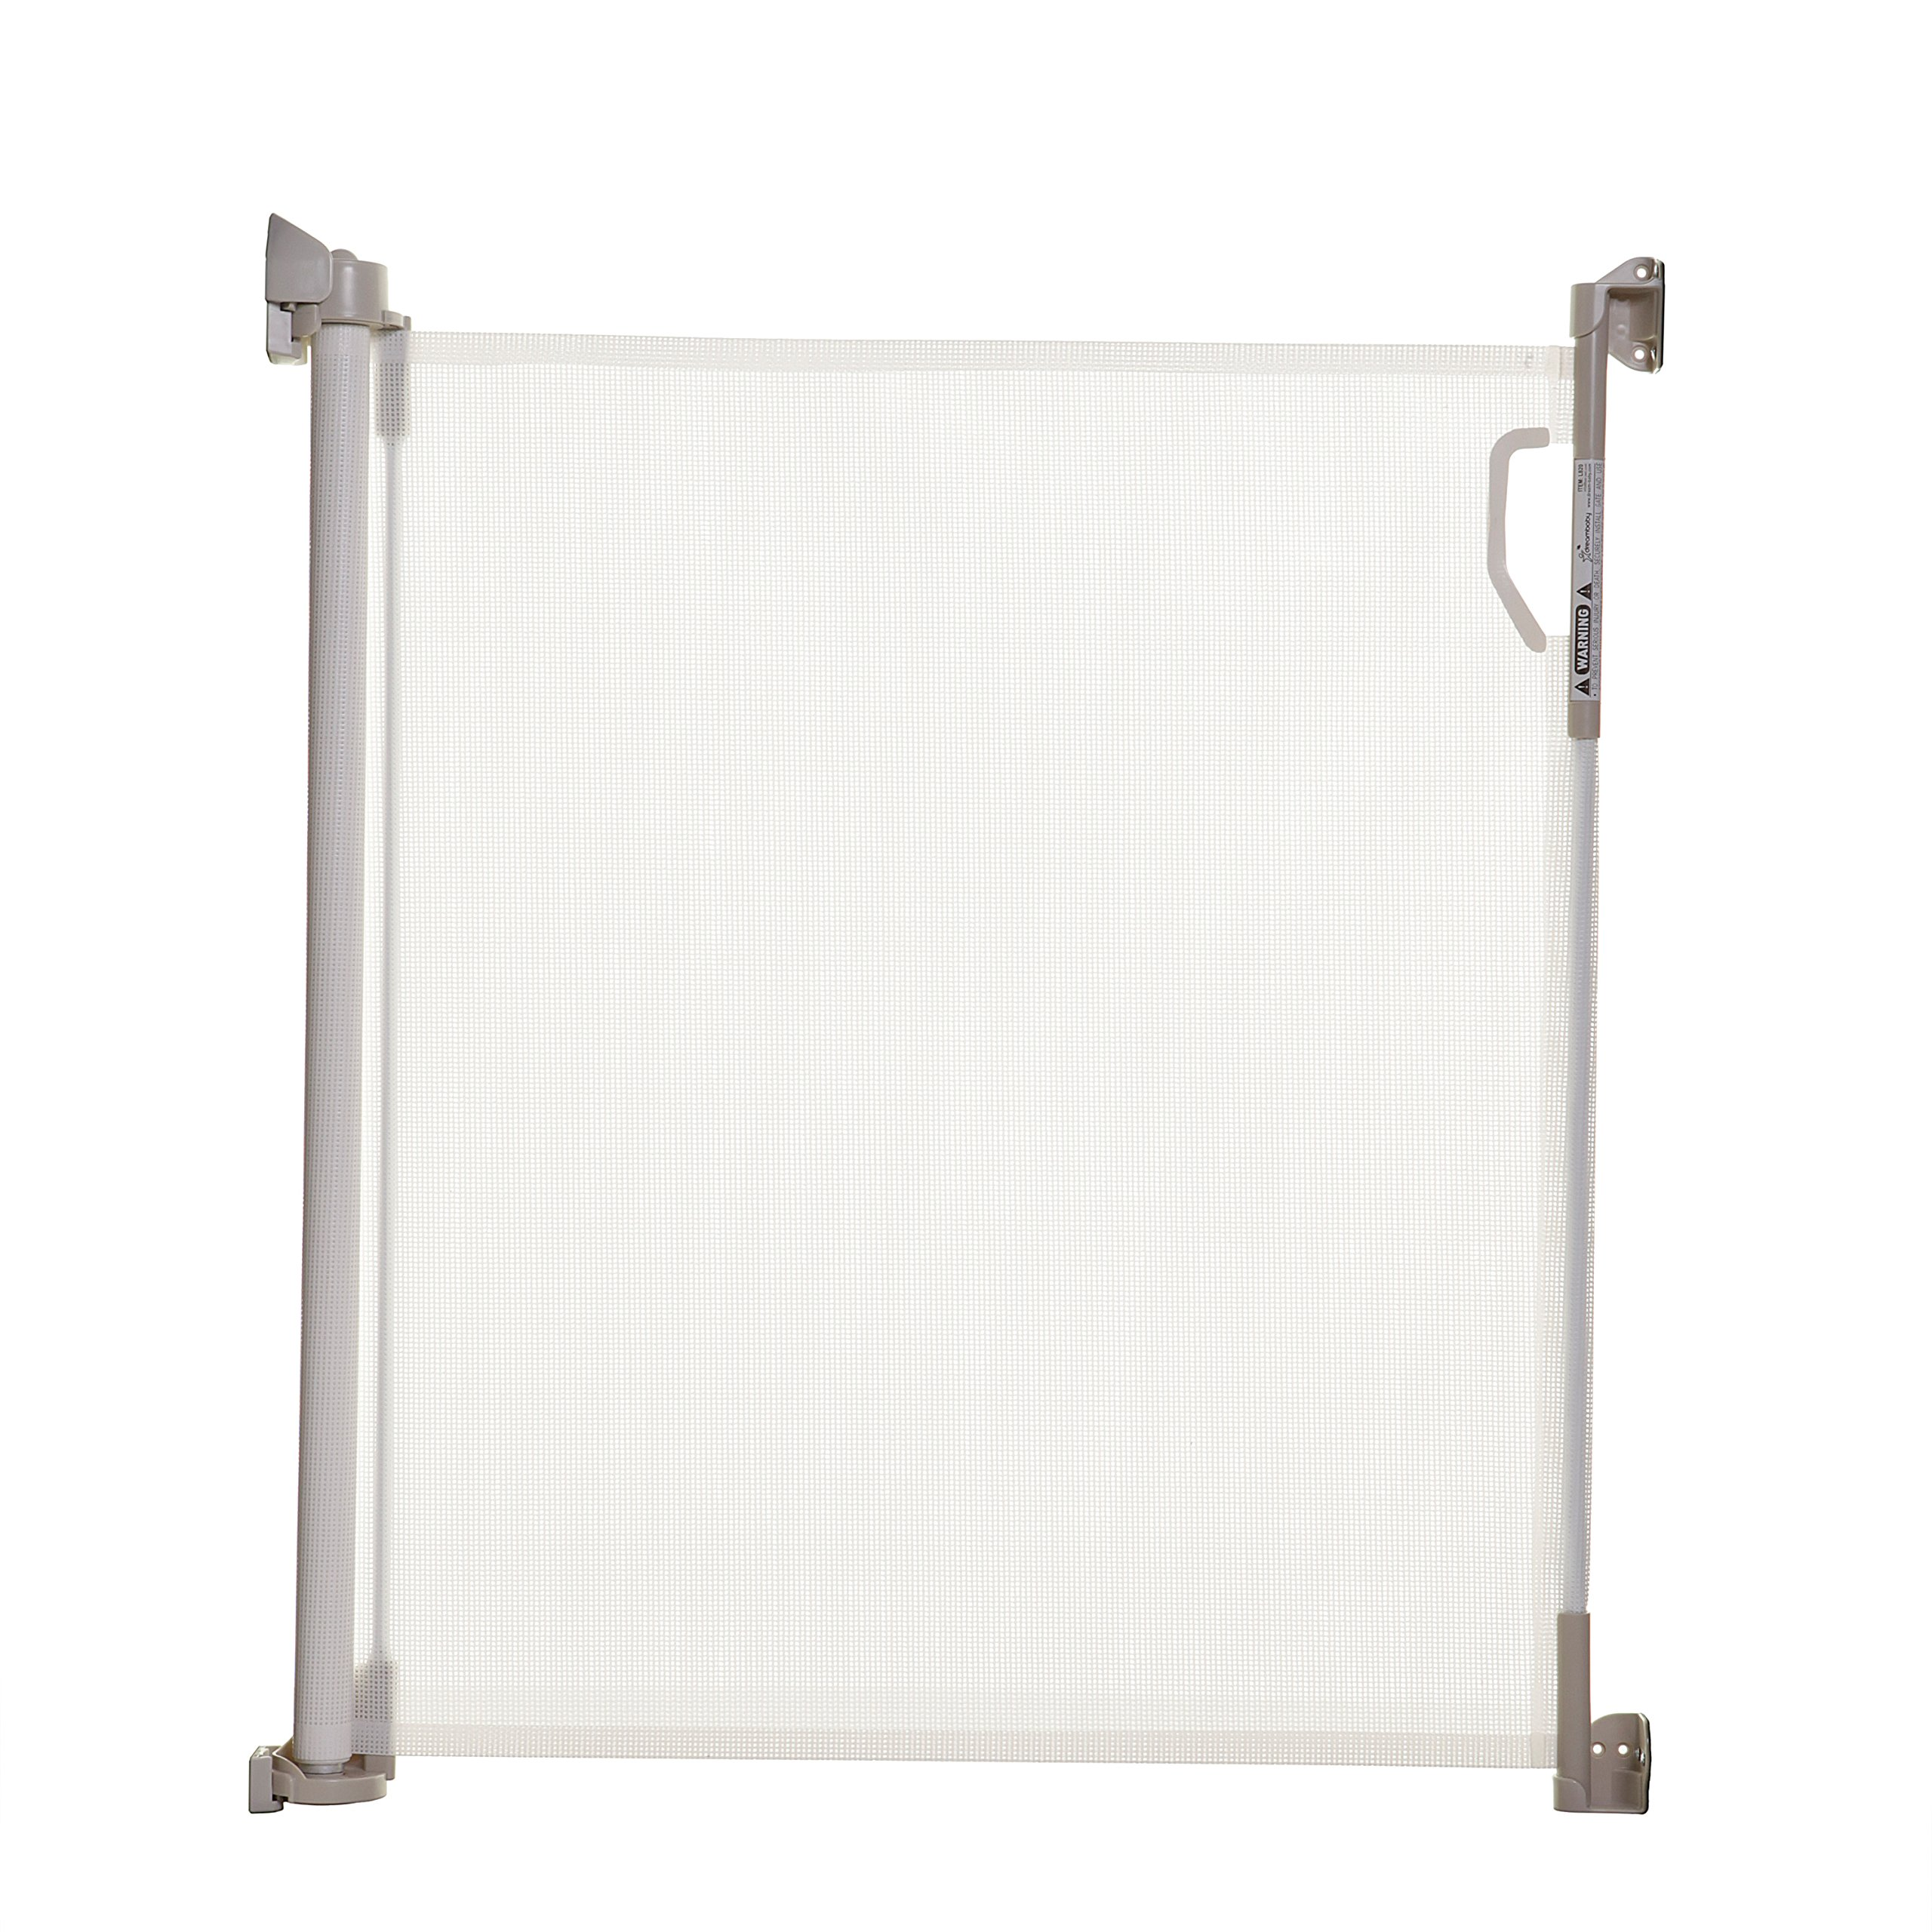 Amazon.com : Dreambaby Spacers For Retractable Gate, Beige